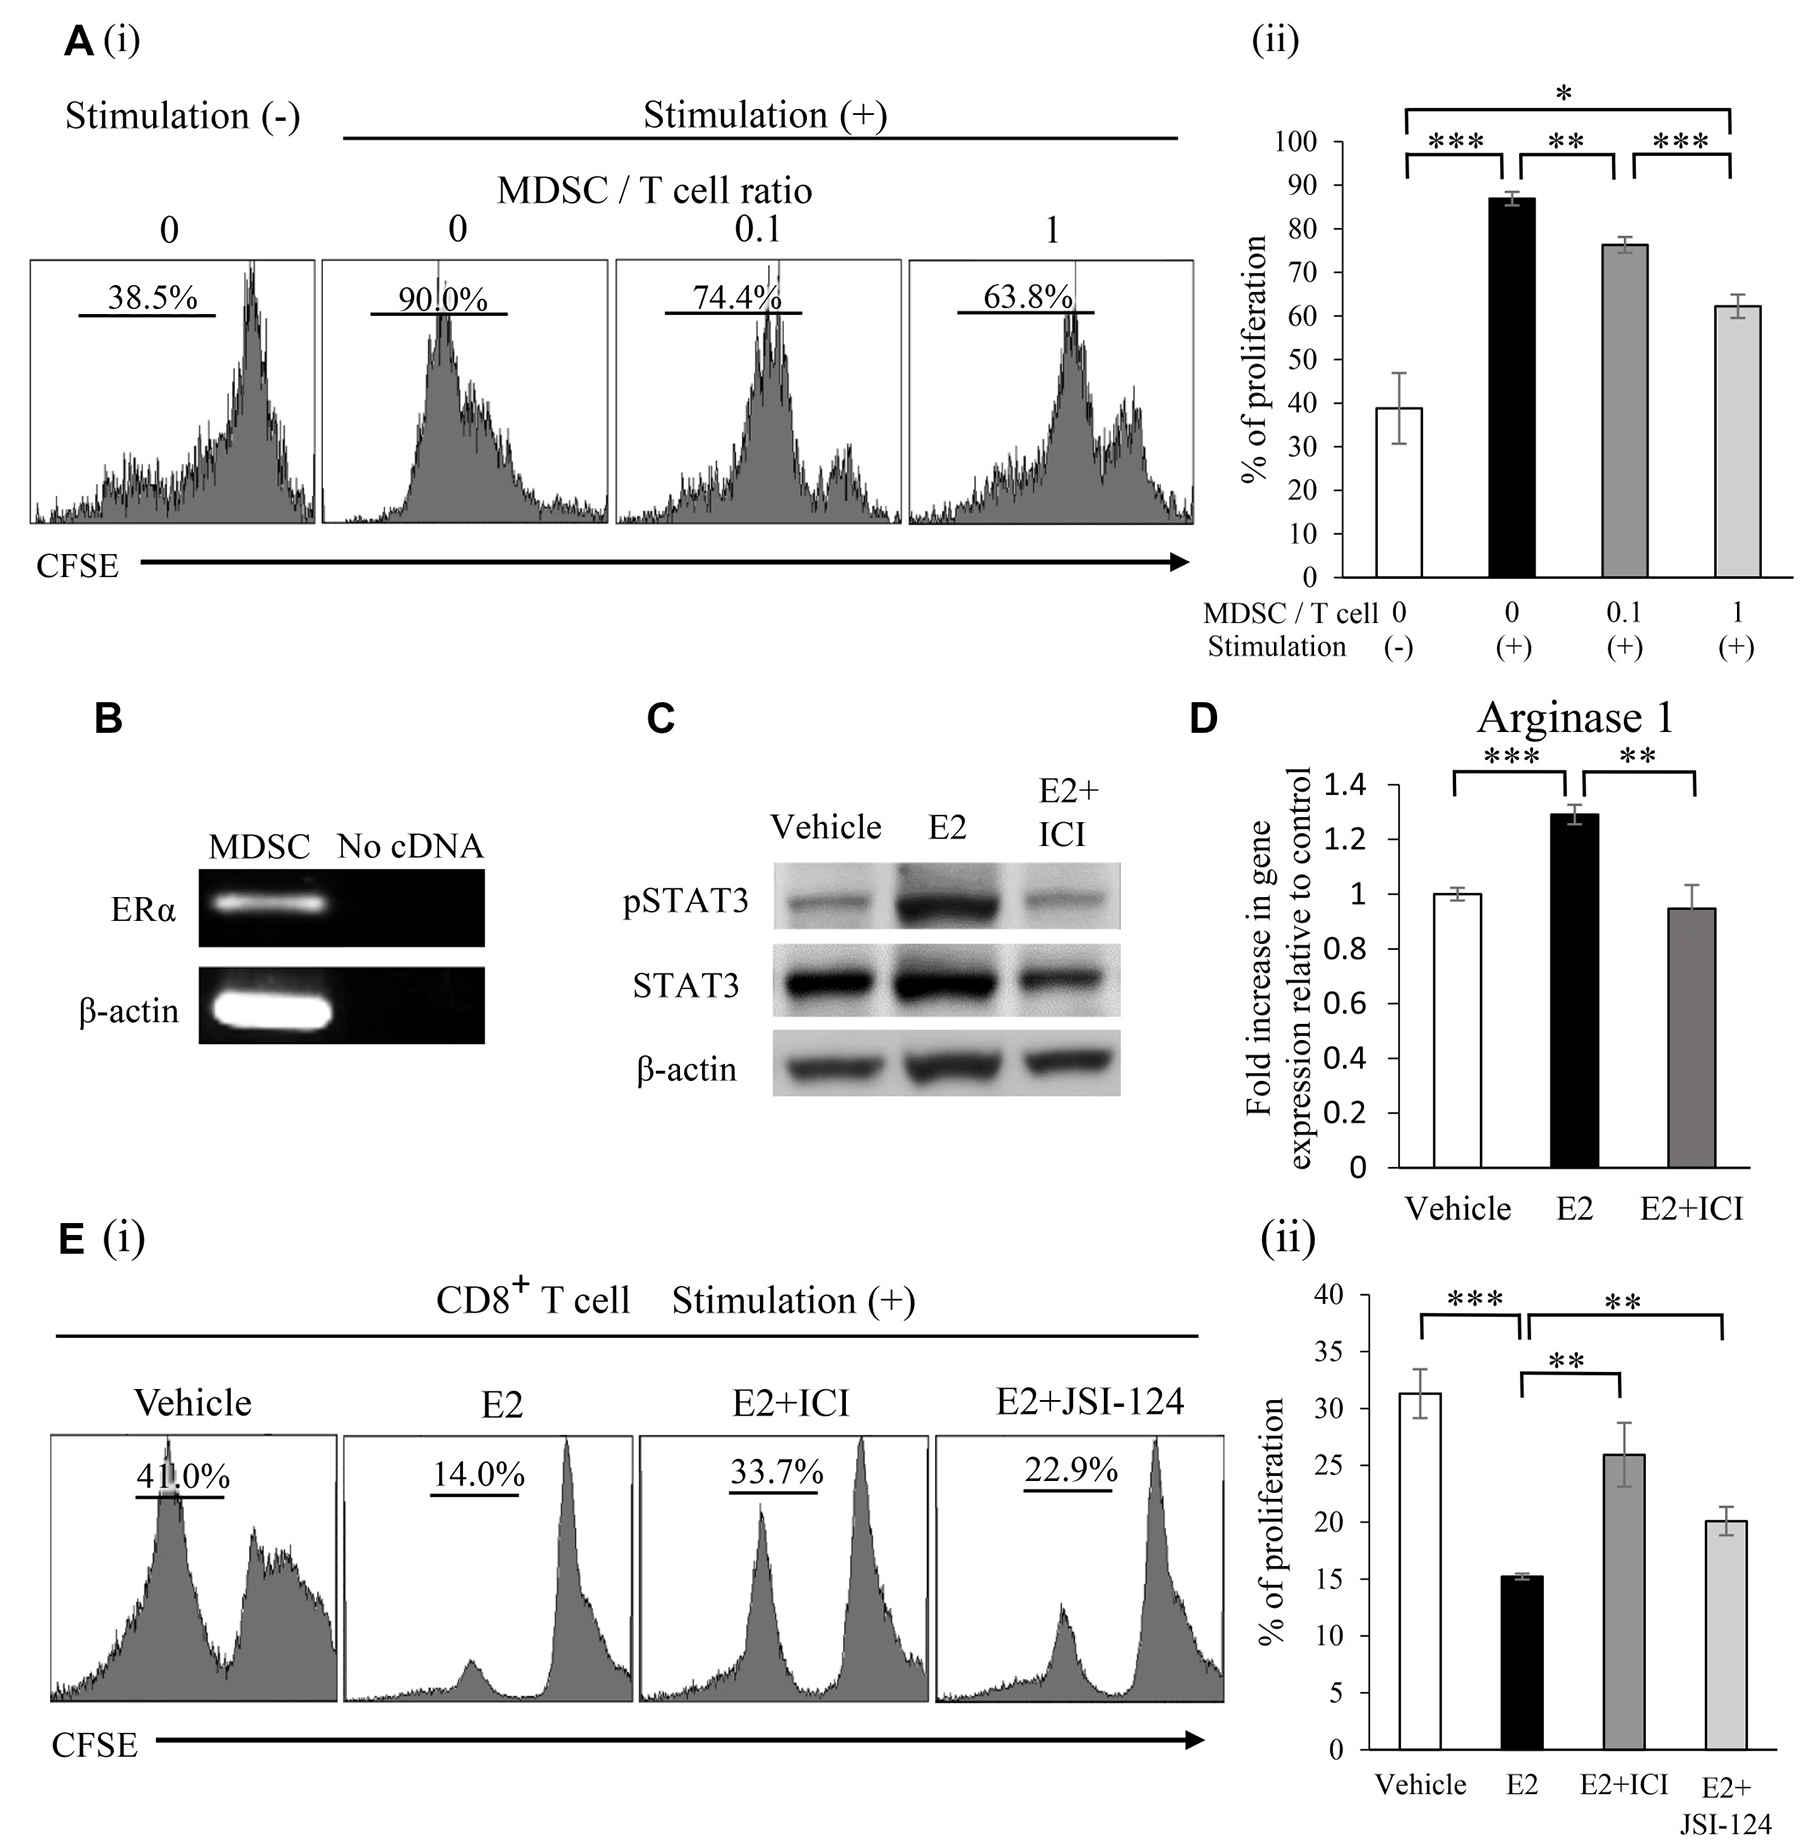 Mechanisms by which E2 stimulates the progression of female cancers.